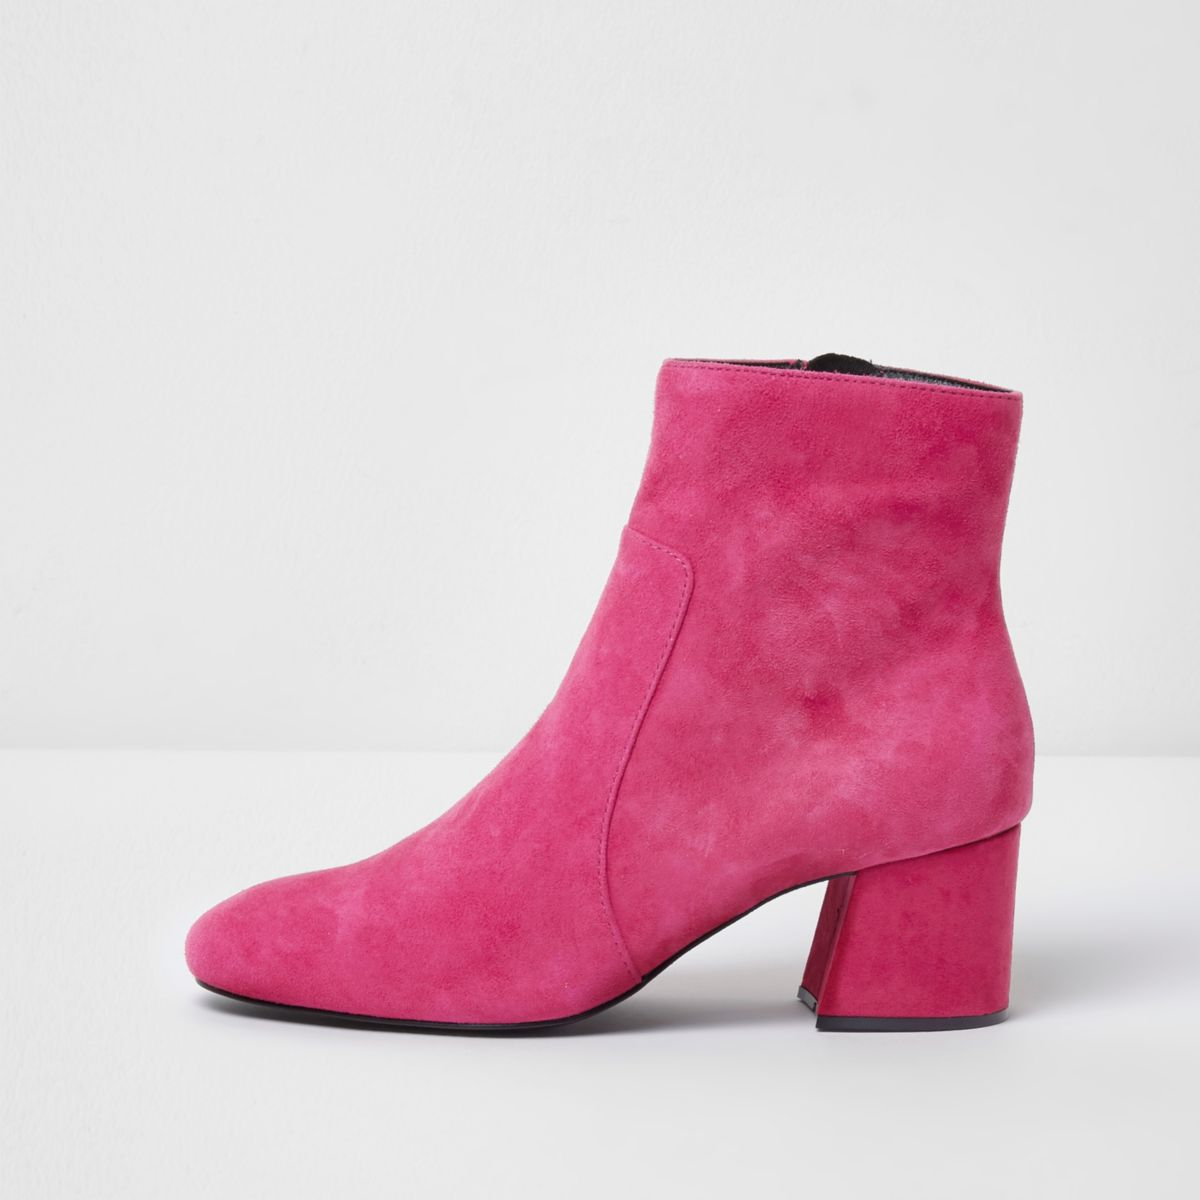 Find great deals on eBay for pink suede ankle boots. Shop with confidence.